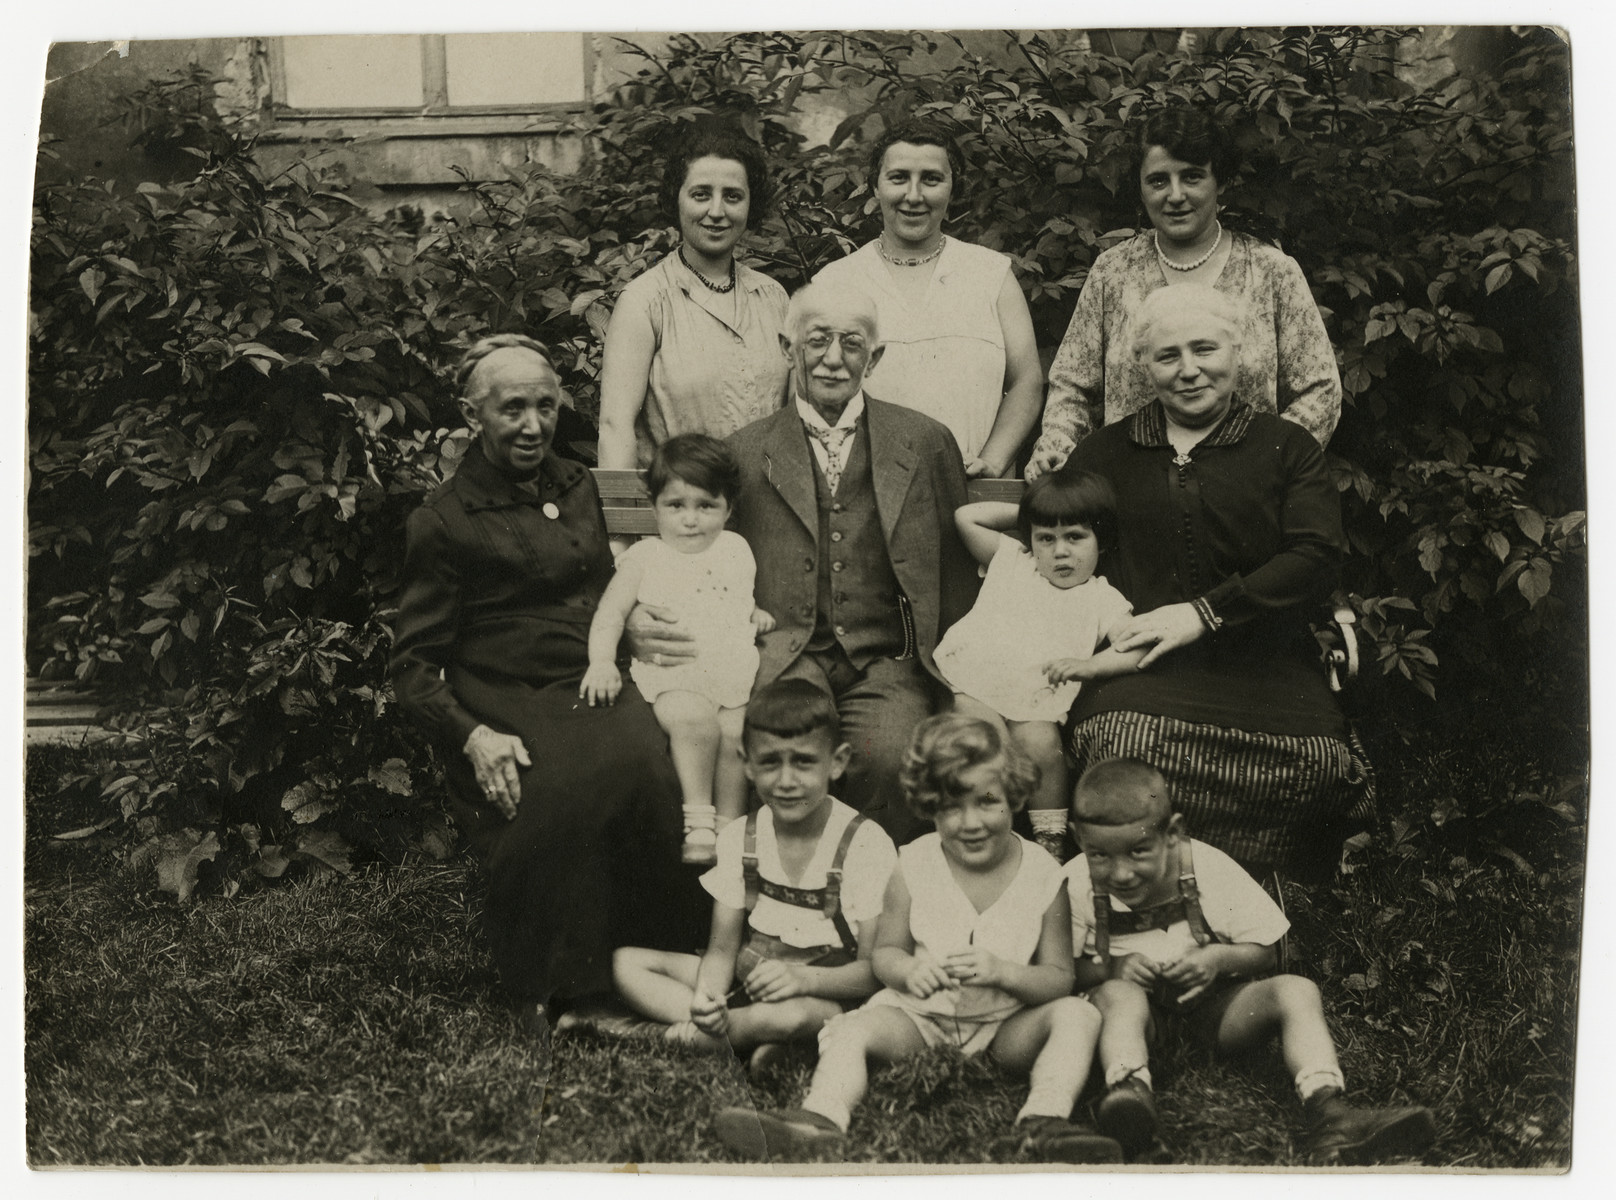 Group portrait of four generations of the Juengster family, seated outside in a garden.  Seated in front are Ludwig Stahl, Suse and Norbert Mueller.  Seated second row are Johanna Sternheimer Juengster (born May 23, 1843), Hilde Stahl, Leopold Juengster (born August 30, 1863, died June 12, 1936), Ilsa Hirsch and Clara Jacobs Juengster (born October 11, 1874, died March 26, 1942).  Standing rear are Berta Stahl, Laura Mueller and Dina Hirsch.